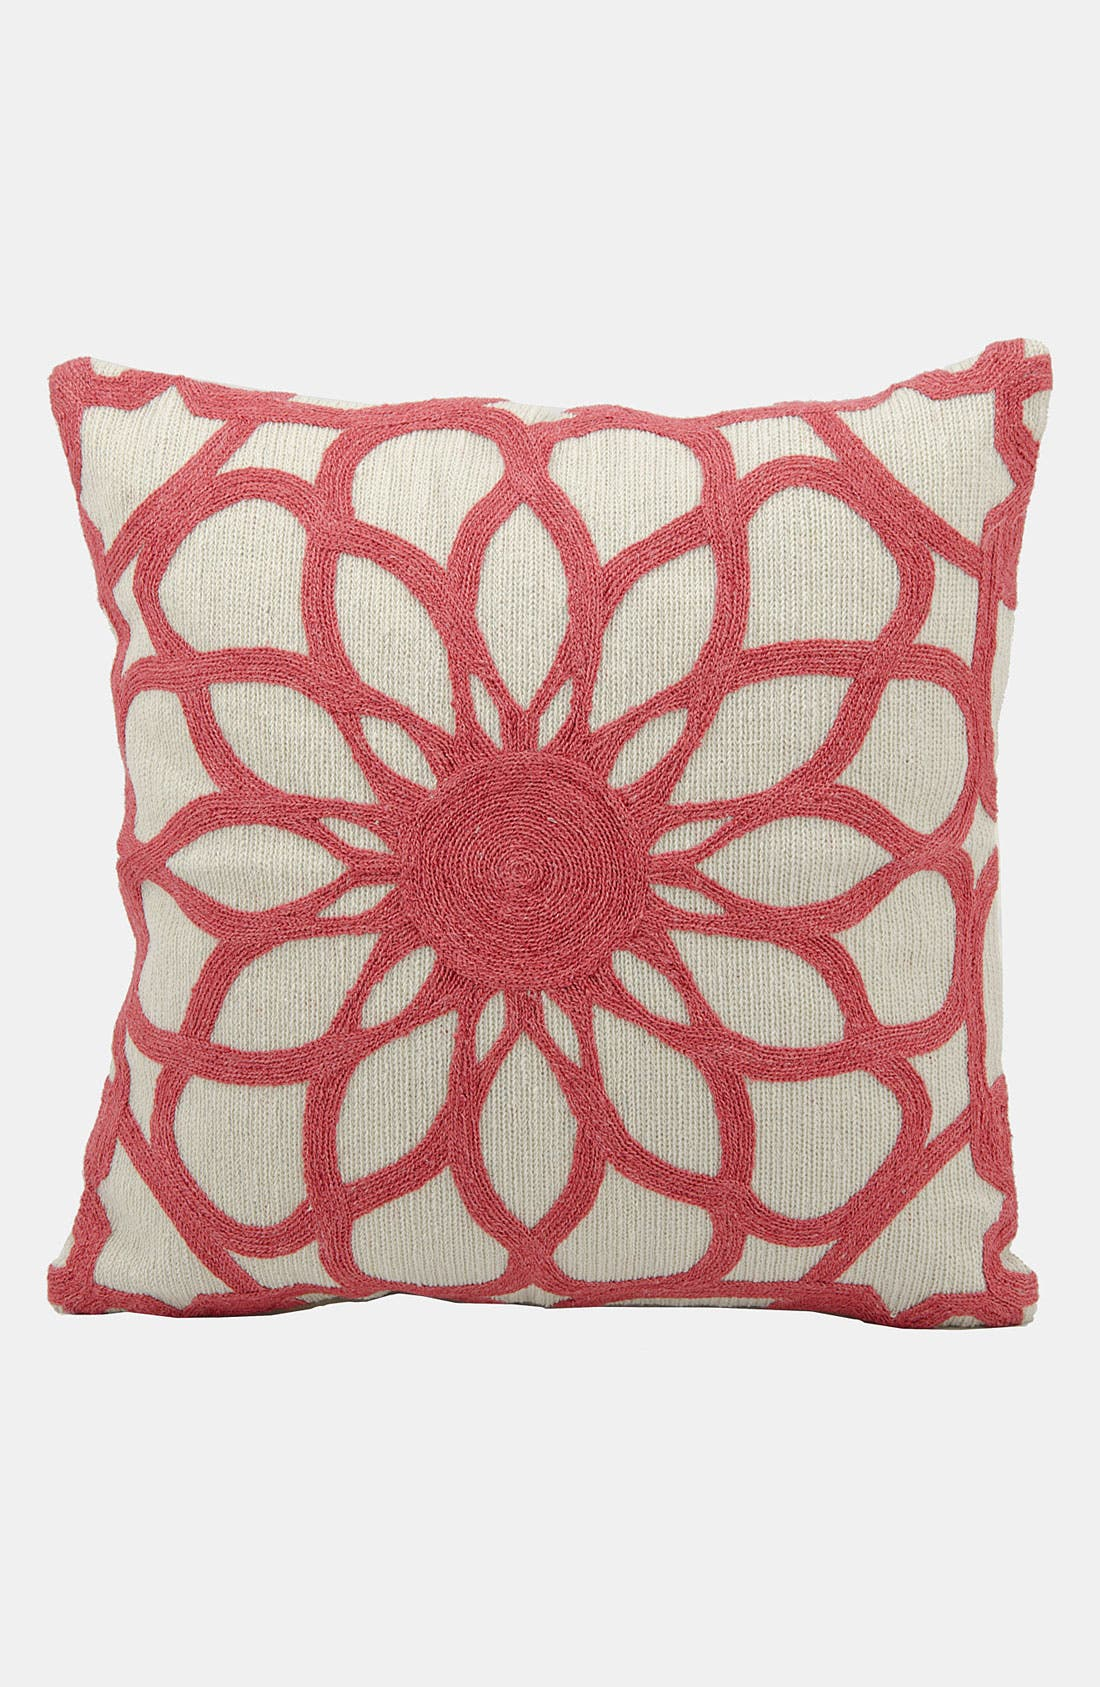 Alternate Image 1 Selected - Mina Victory 'Dahlia Flower' Pillow